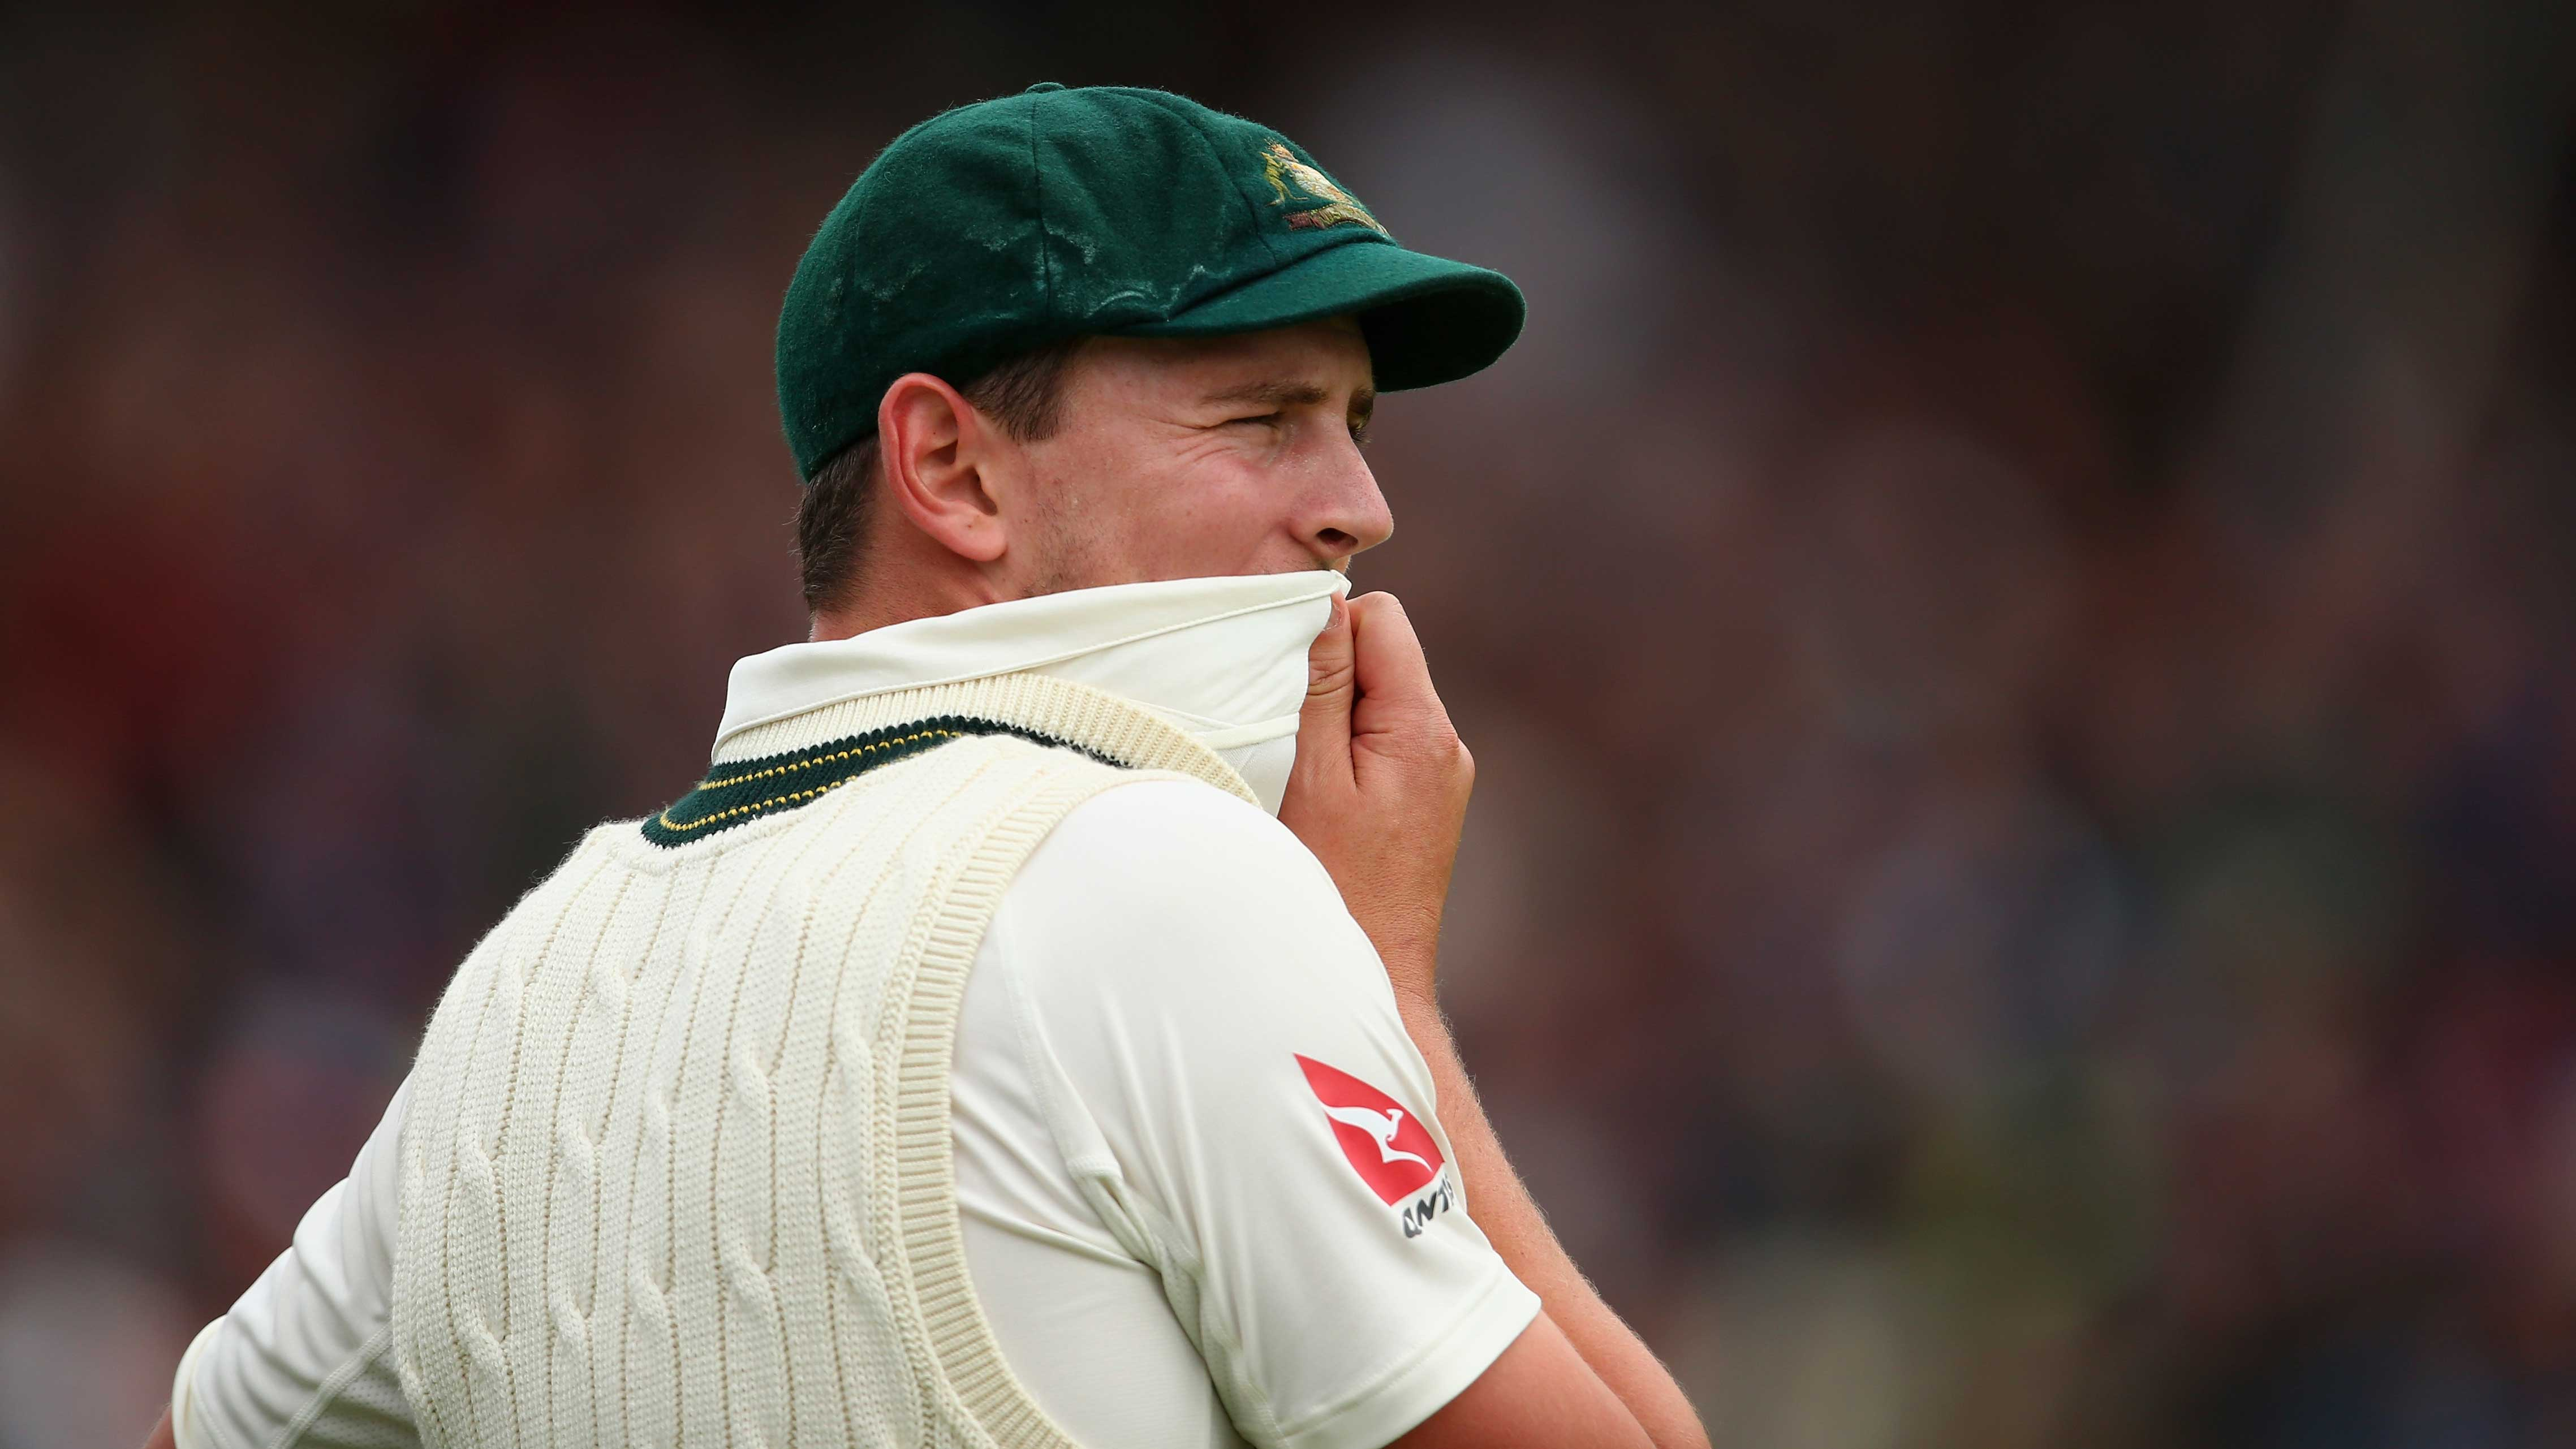 Hazlewood admits he struggled physically in the 2015 Ashes // Getty